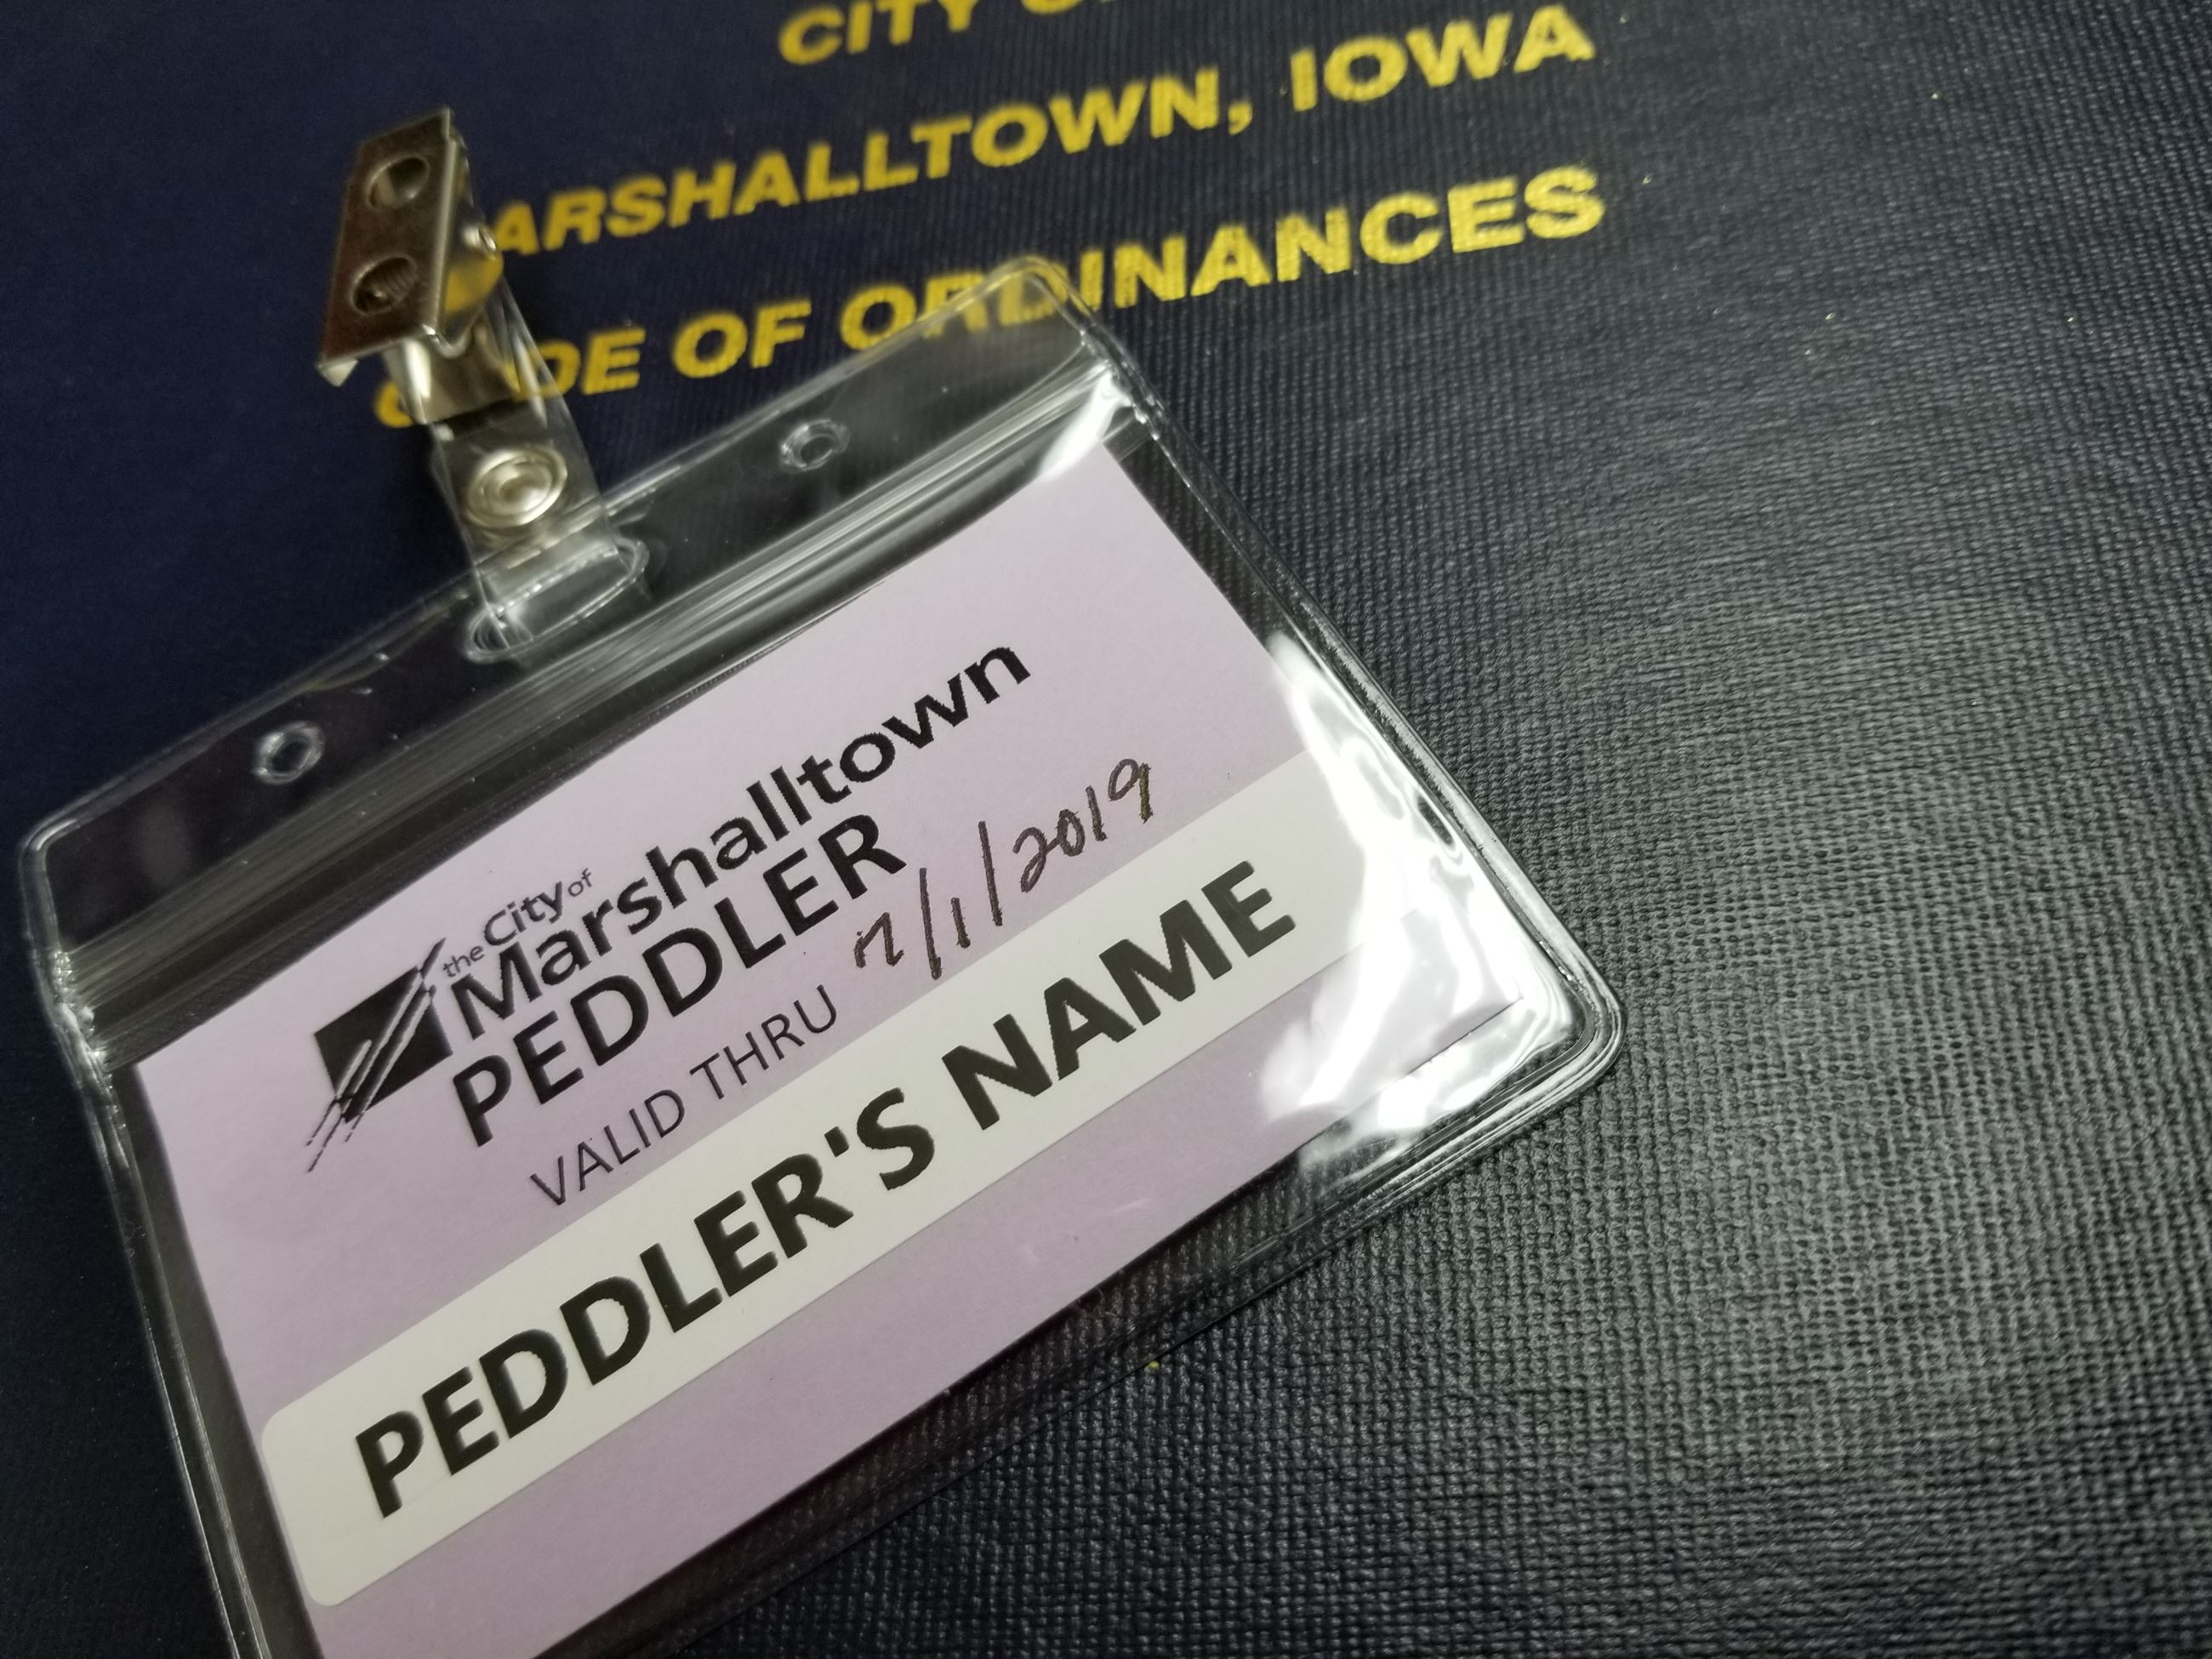 PEDDLER IDENTIFICATION BADGE